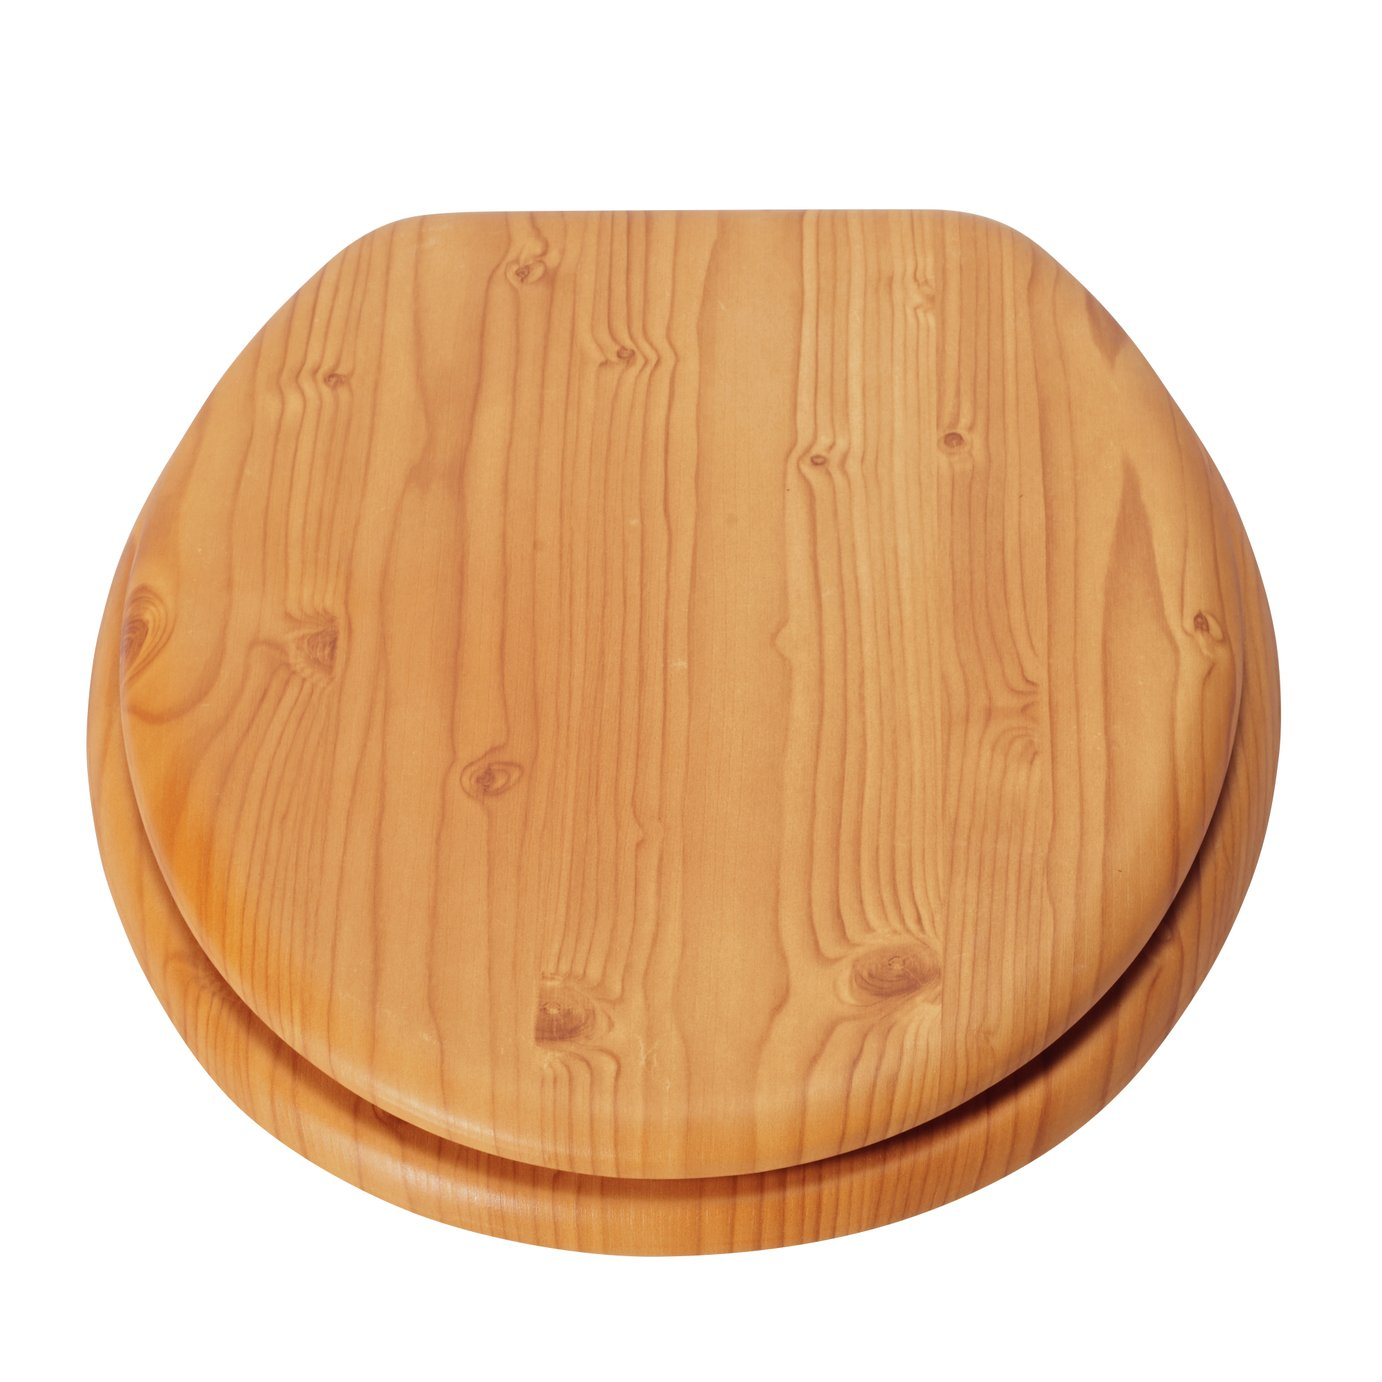 HOME Moulded Wood Toilet Seat - Antique Pine Effect